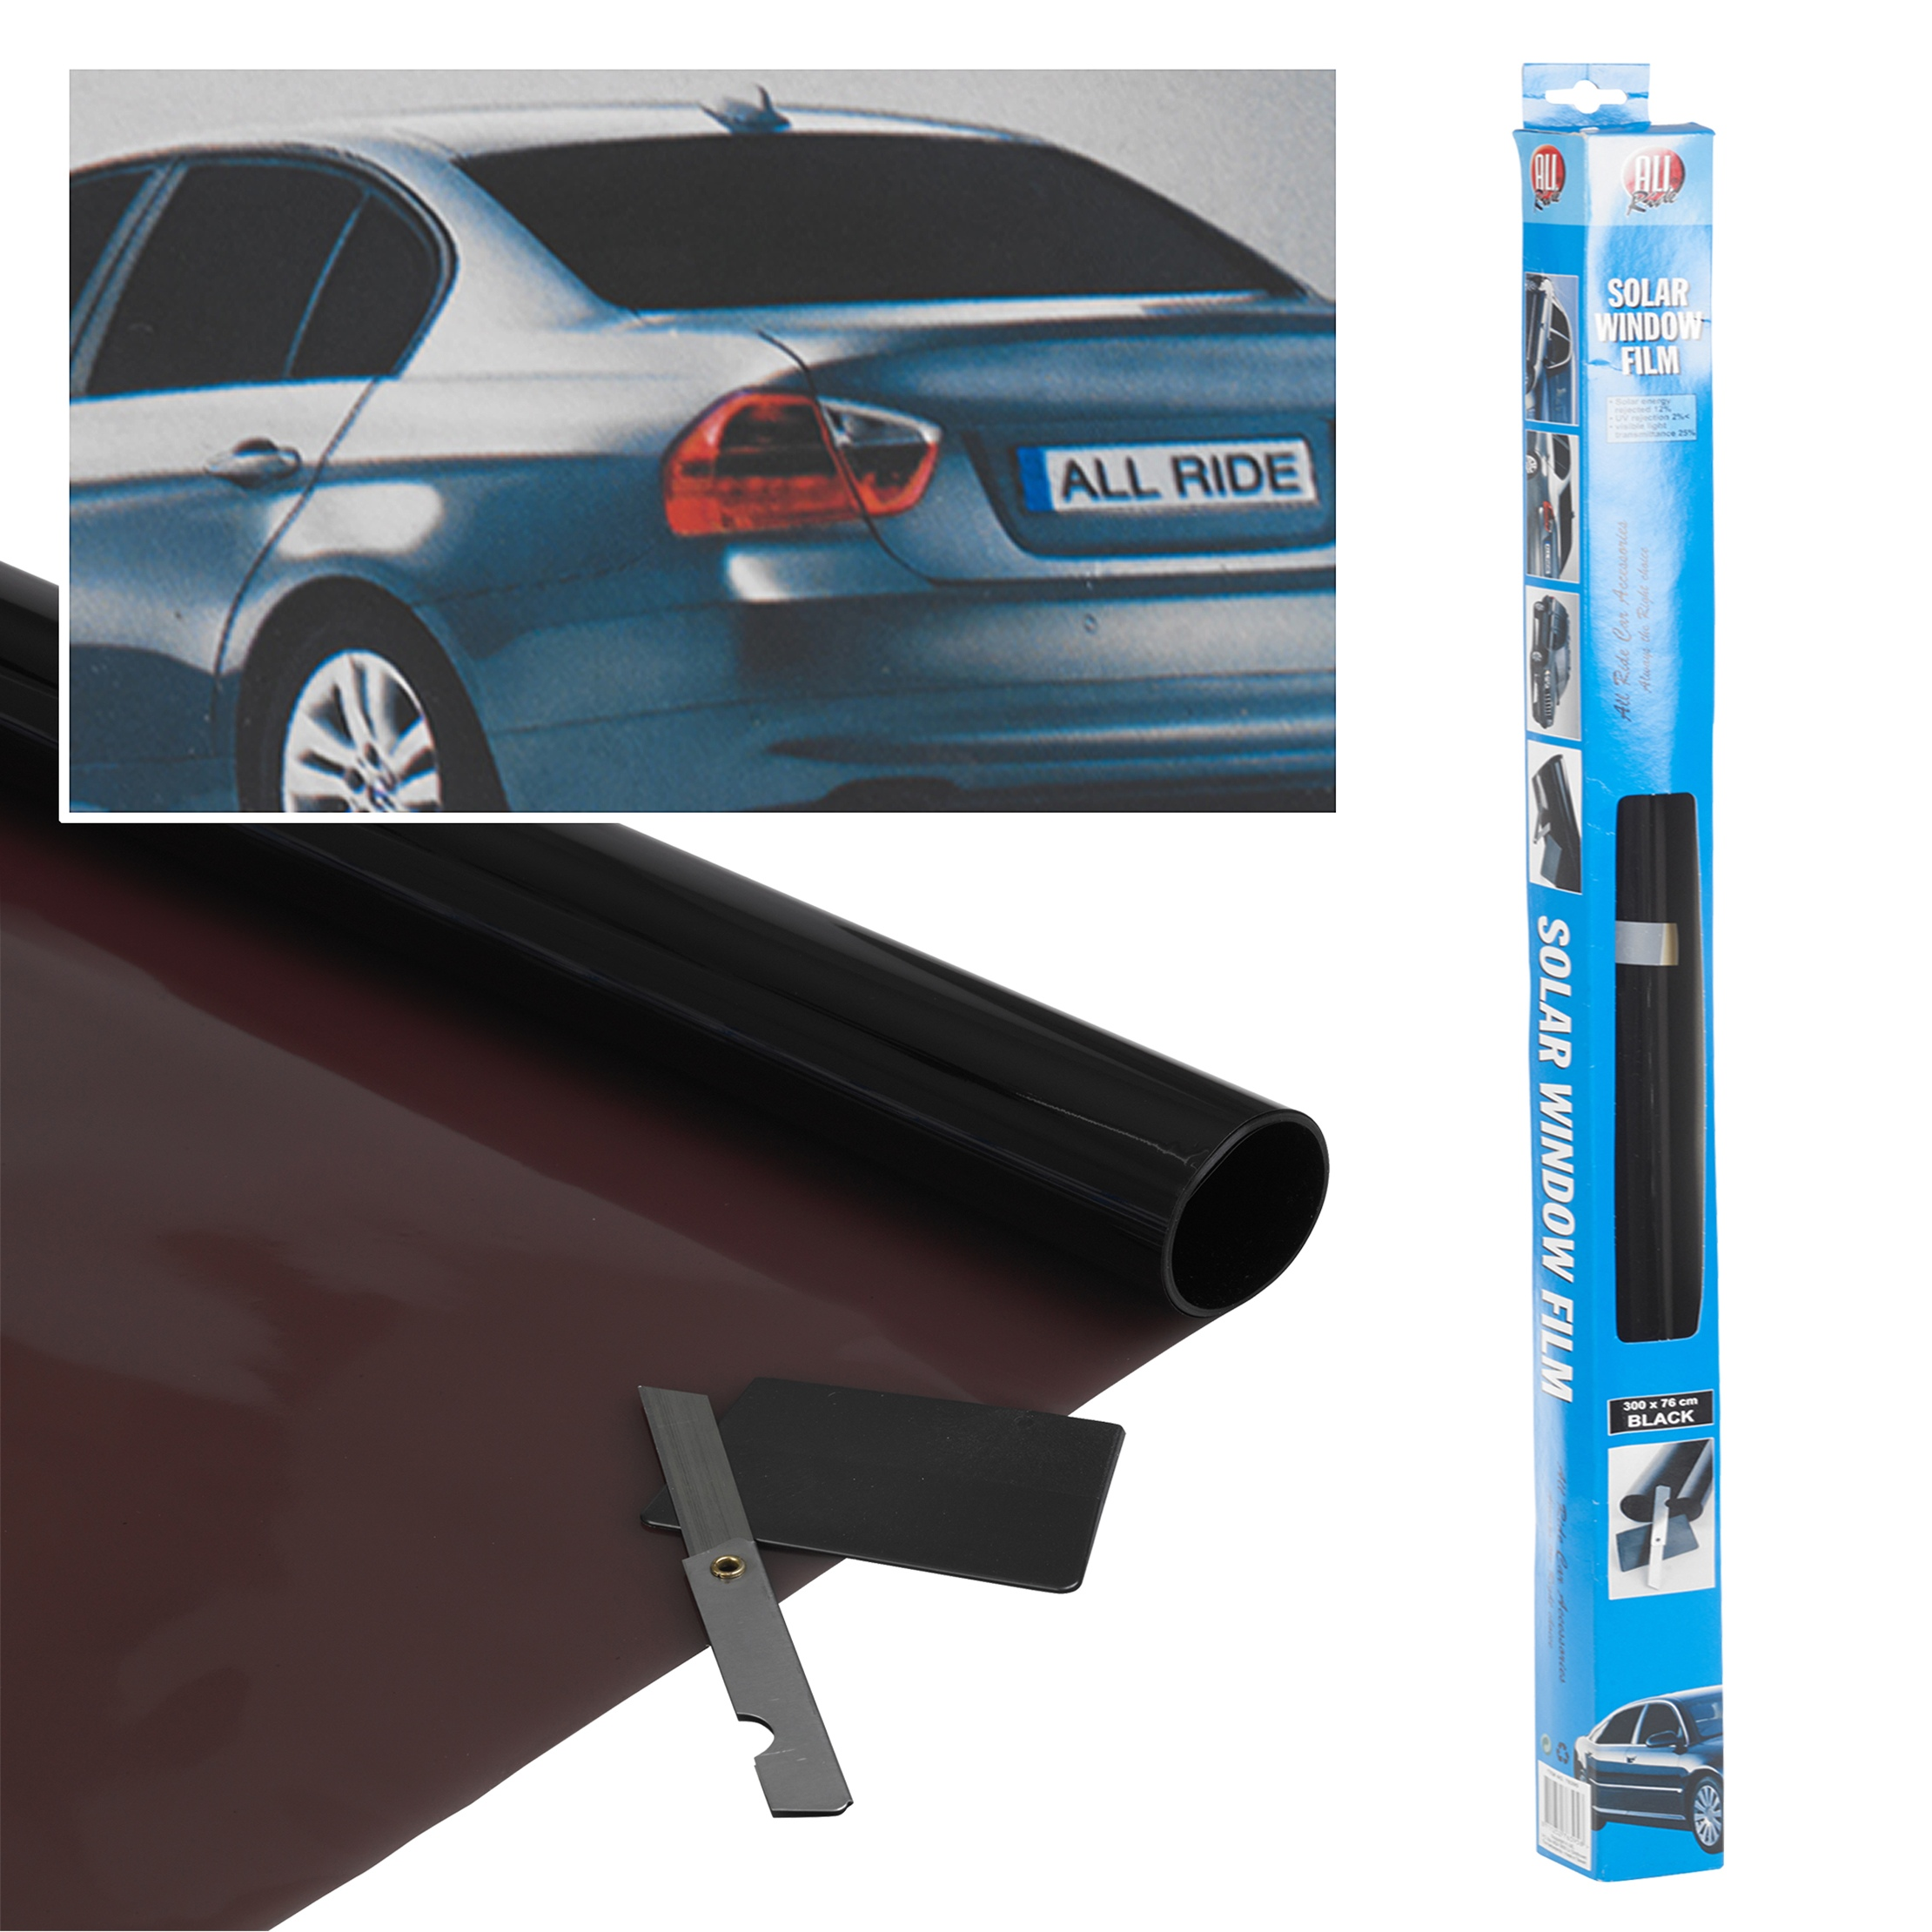 Solar Window Film >> Details About Ultra Dark Black Tint Car Limo Van Window Film Reduce Solar Sun Glare 300 X 50cm